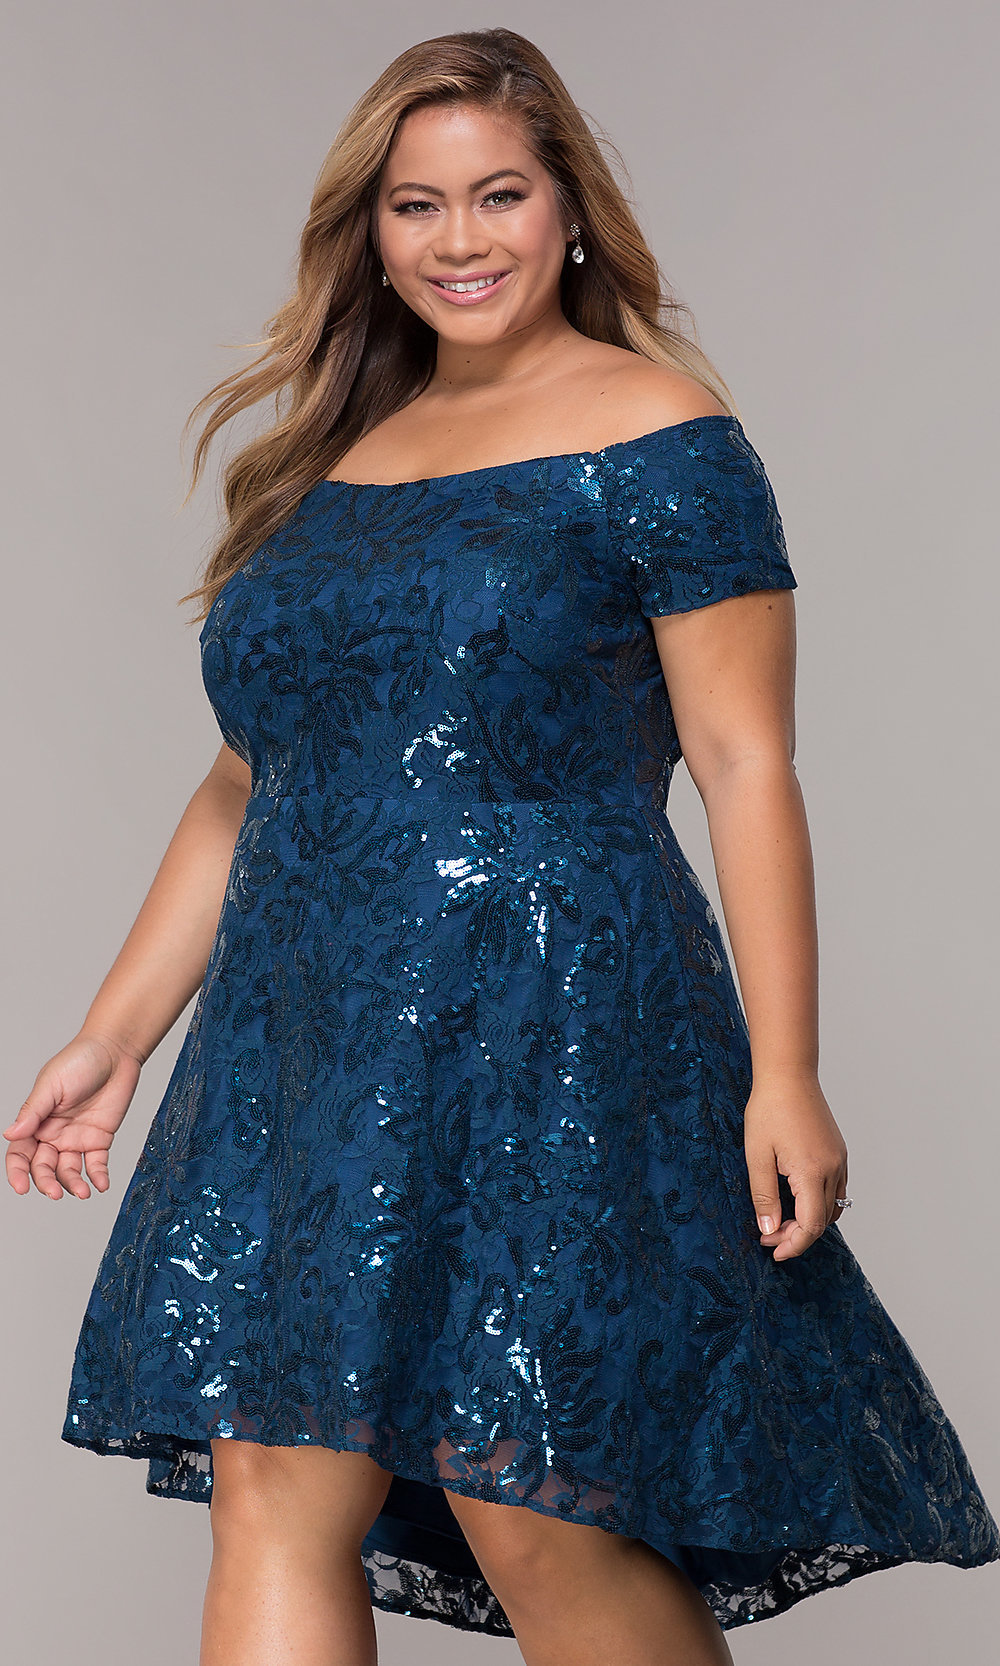 0cef347d4485c ... plus-size wedding-guest party dress. Style. Tap to expand